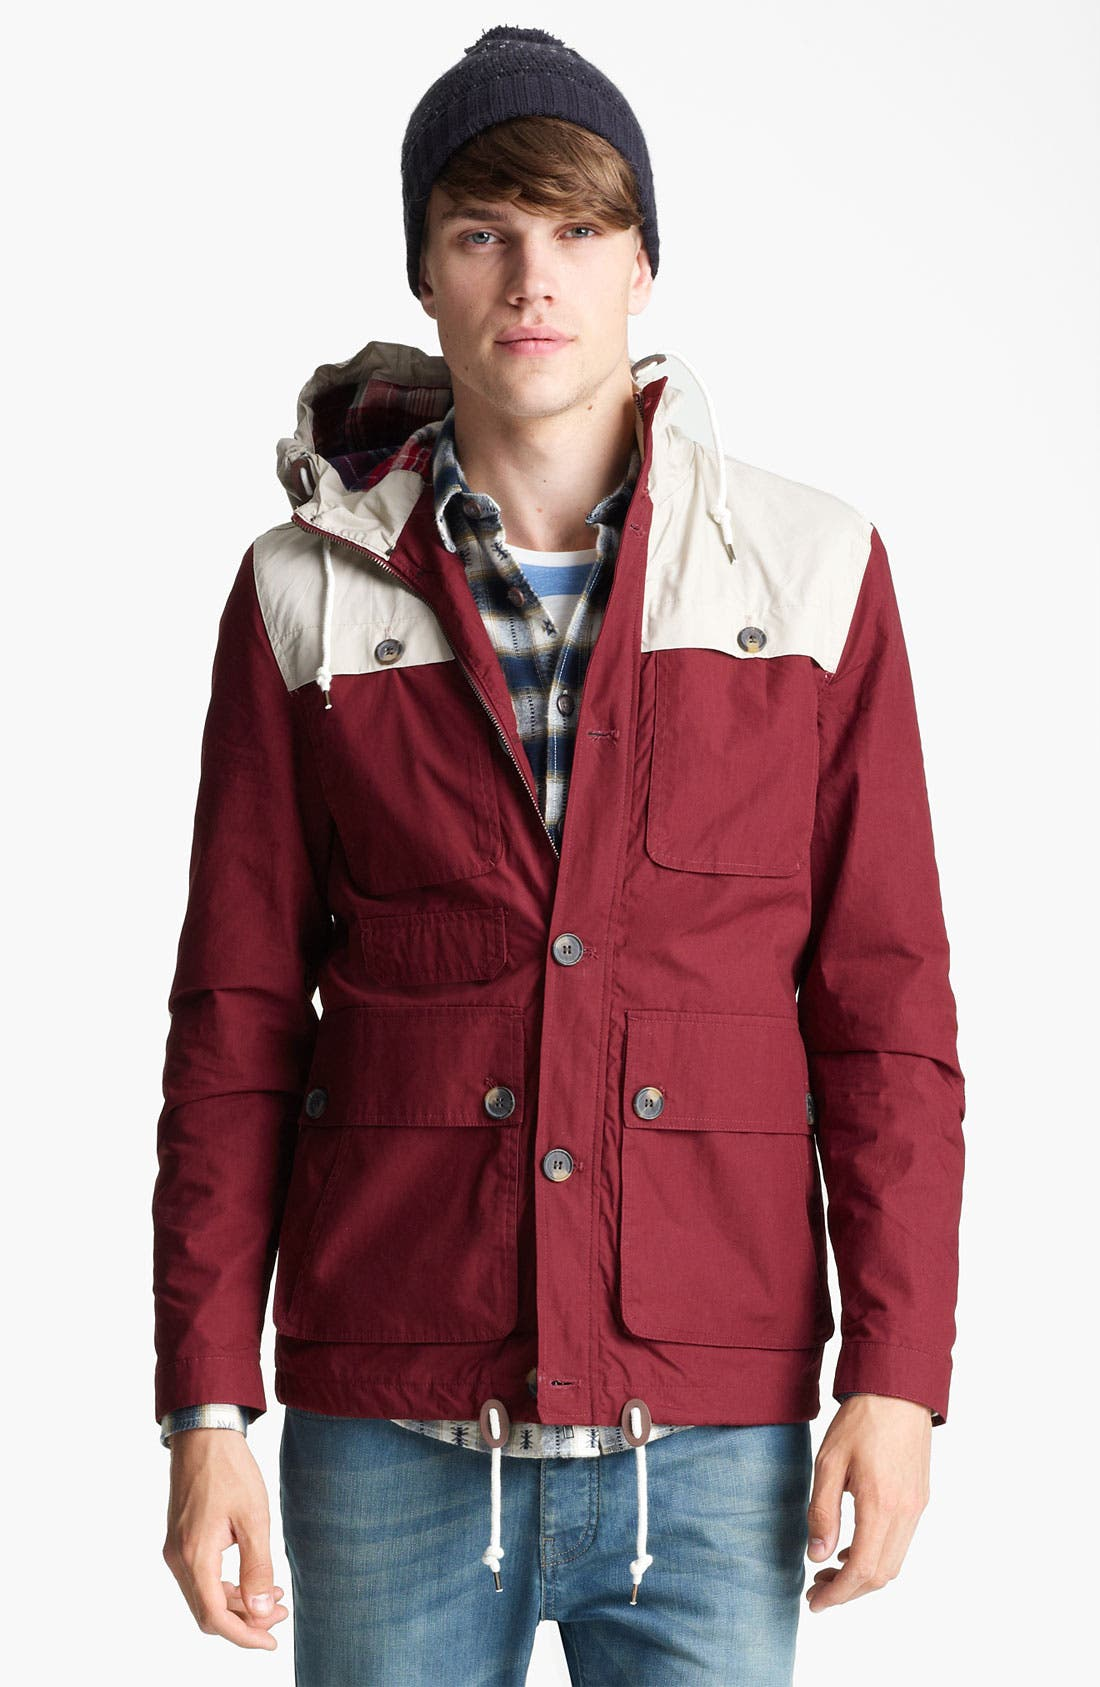 Alternate Image 1 Selected - Topman Colorblock Hooded Jacket